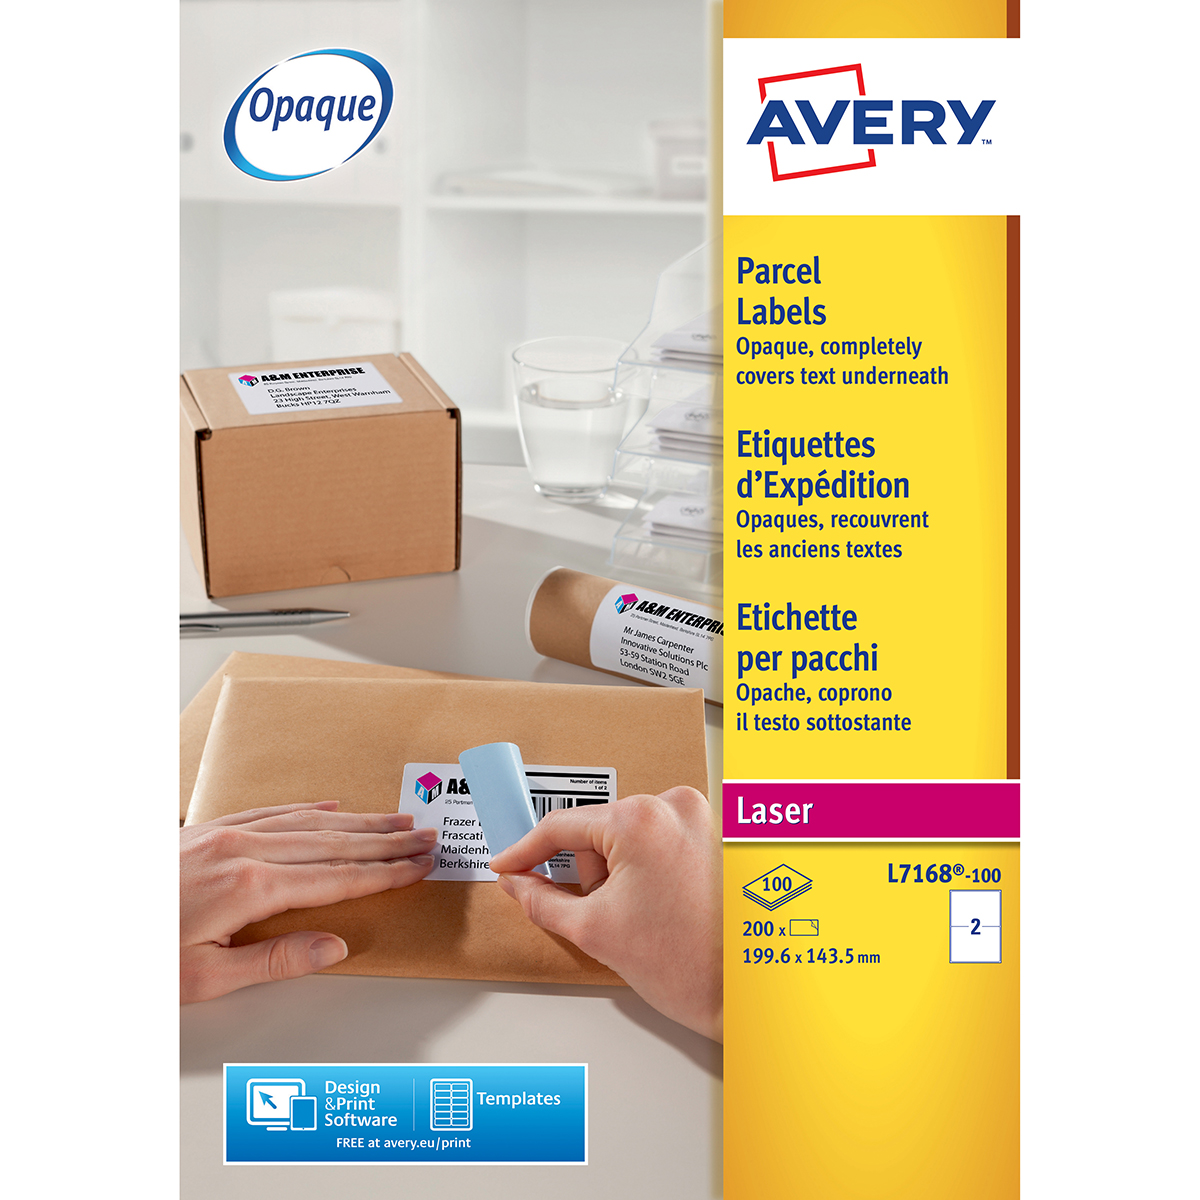 Avery L7168-100 Parcel Labels 100 sheets - 2 Labels per Sheet